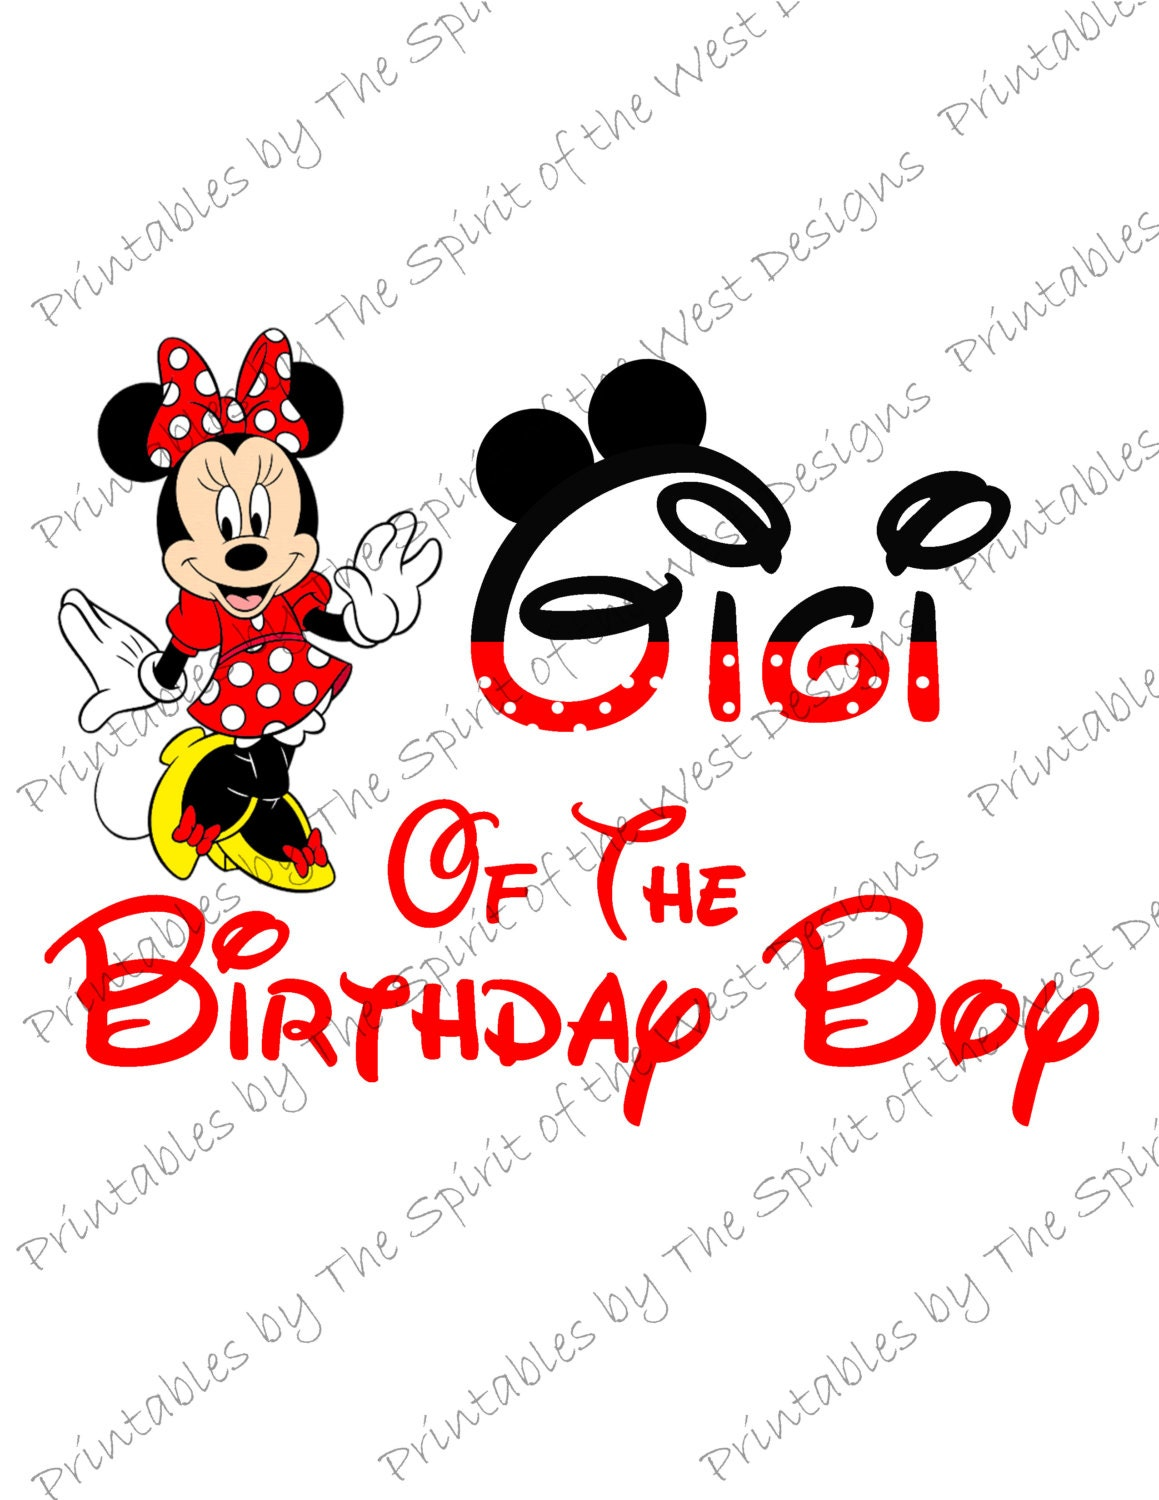 Gigi of the Birthday Boy Minnie Mouse Iron on IMAGE Mouse Ears | Etsy